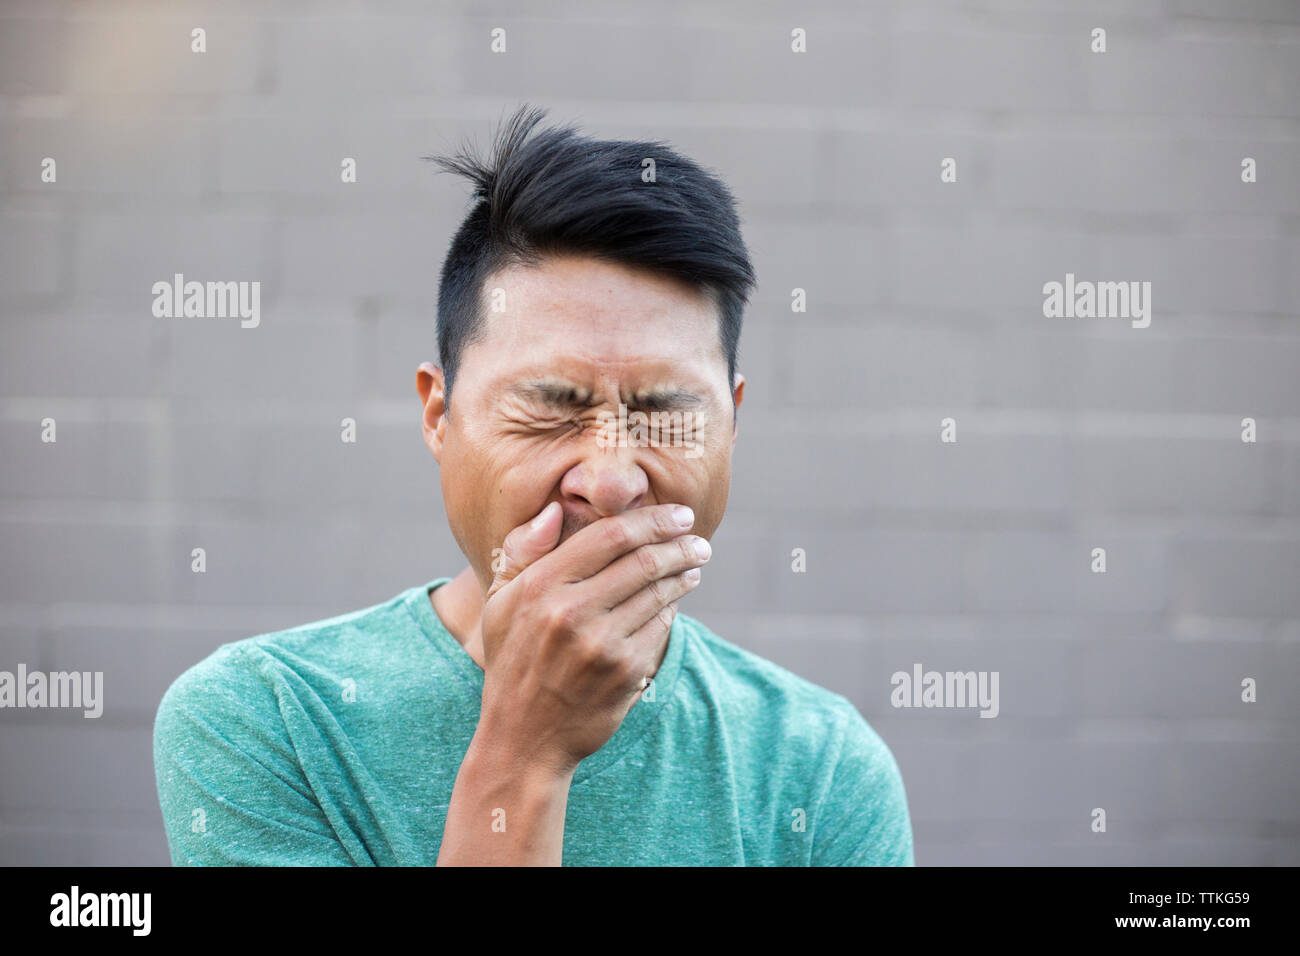 Close-up of man with hands covering mouth while yawning against wall - Stock Image